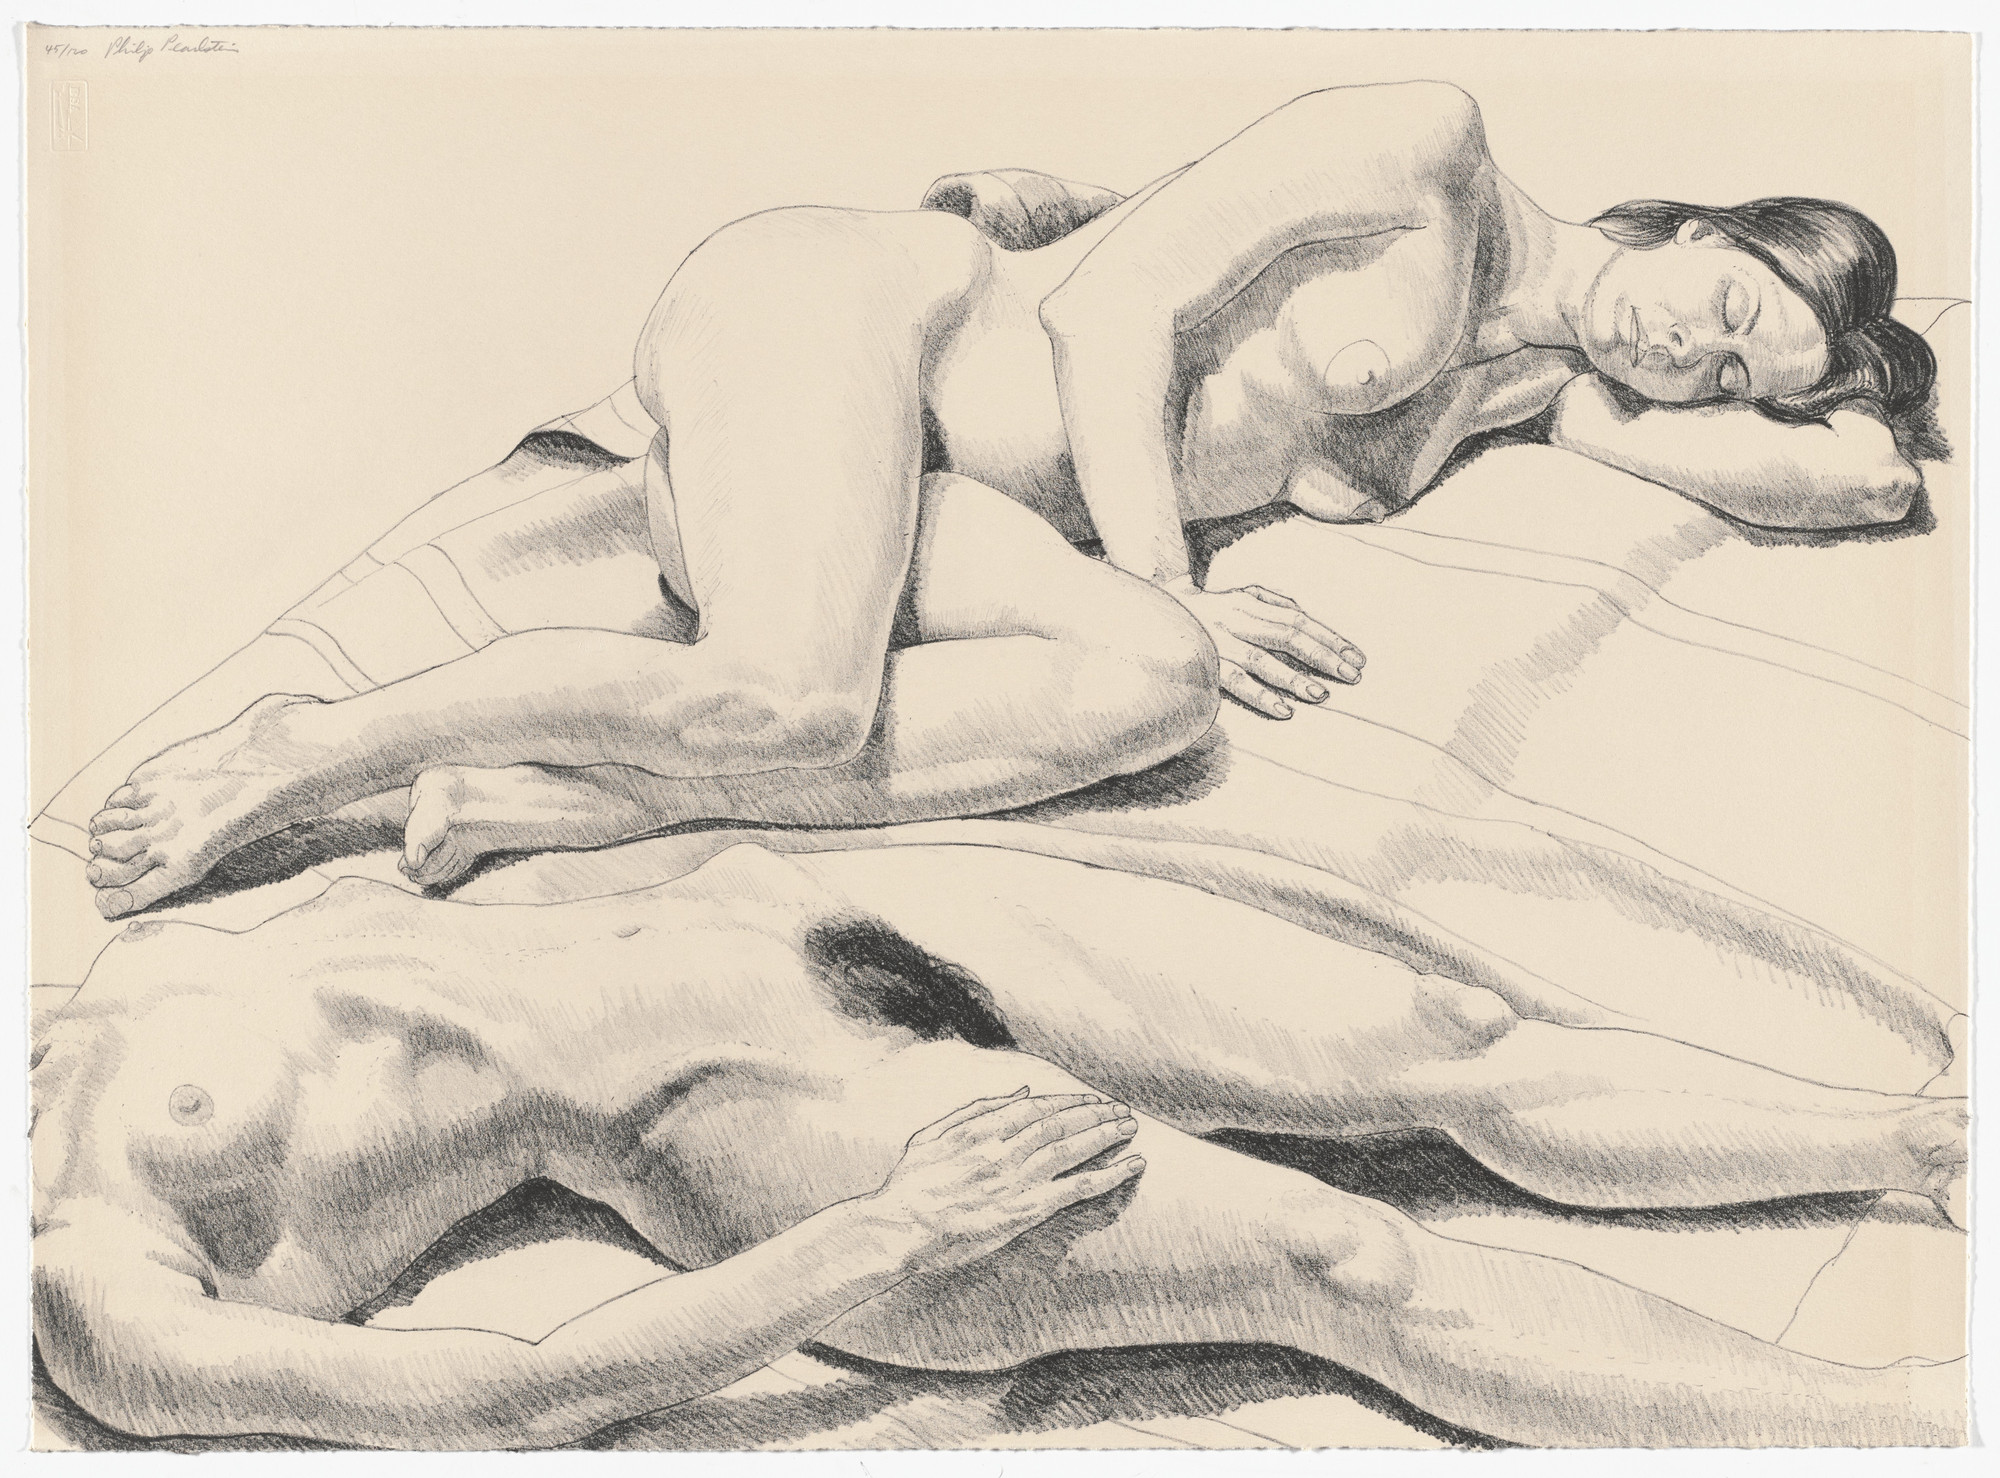 Philip Pearlstein. Two Reclining Nudes on Rug from Ten Lithographs by Ten Artists. 1971 | MoMA